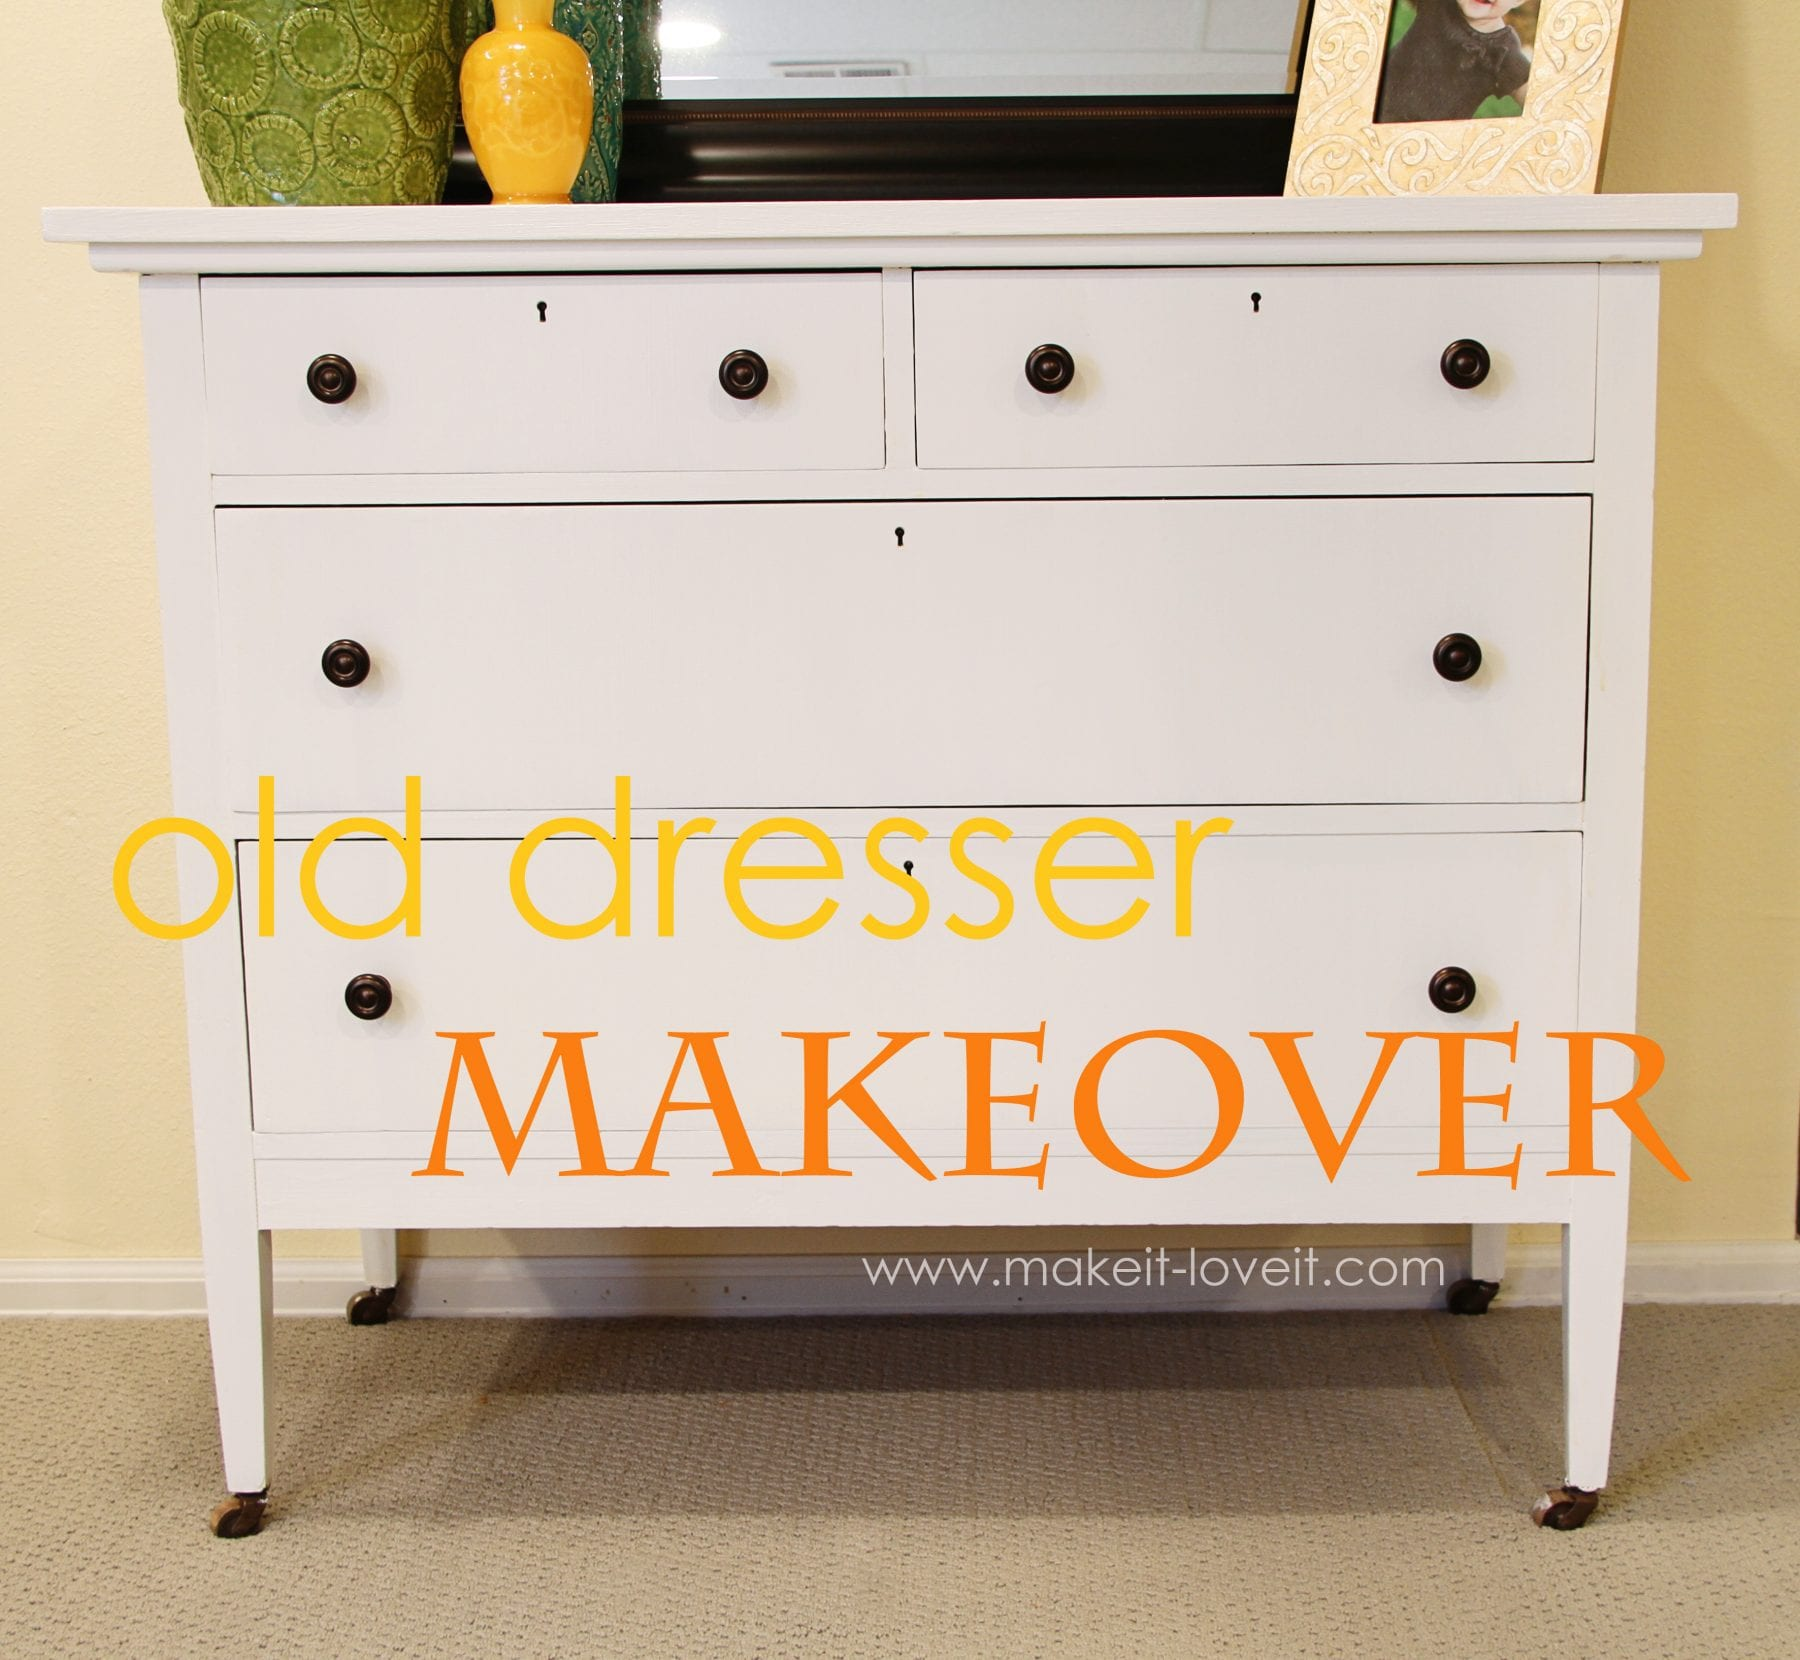 Home Decor Painting An Old Dresser From The Thrift Store Make